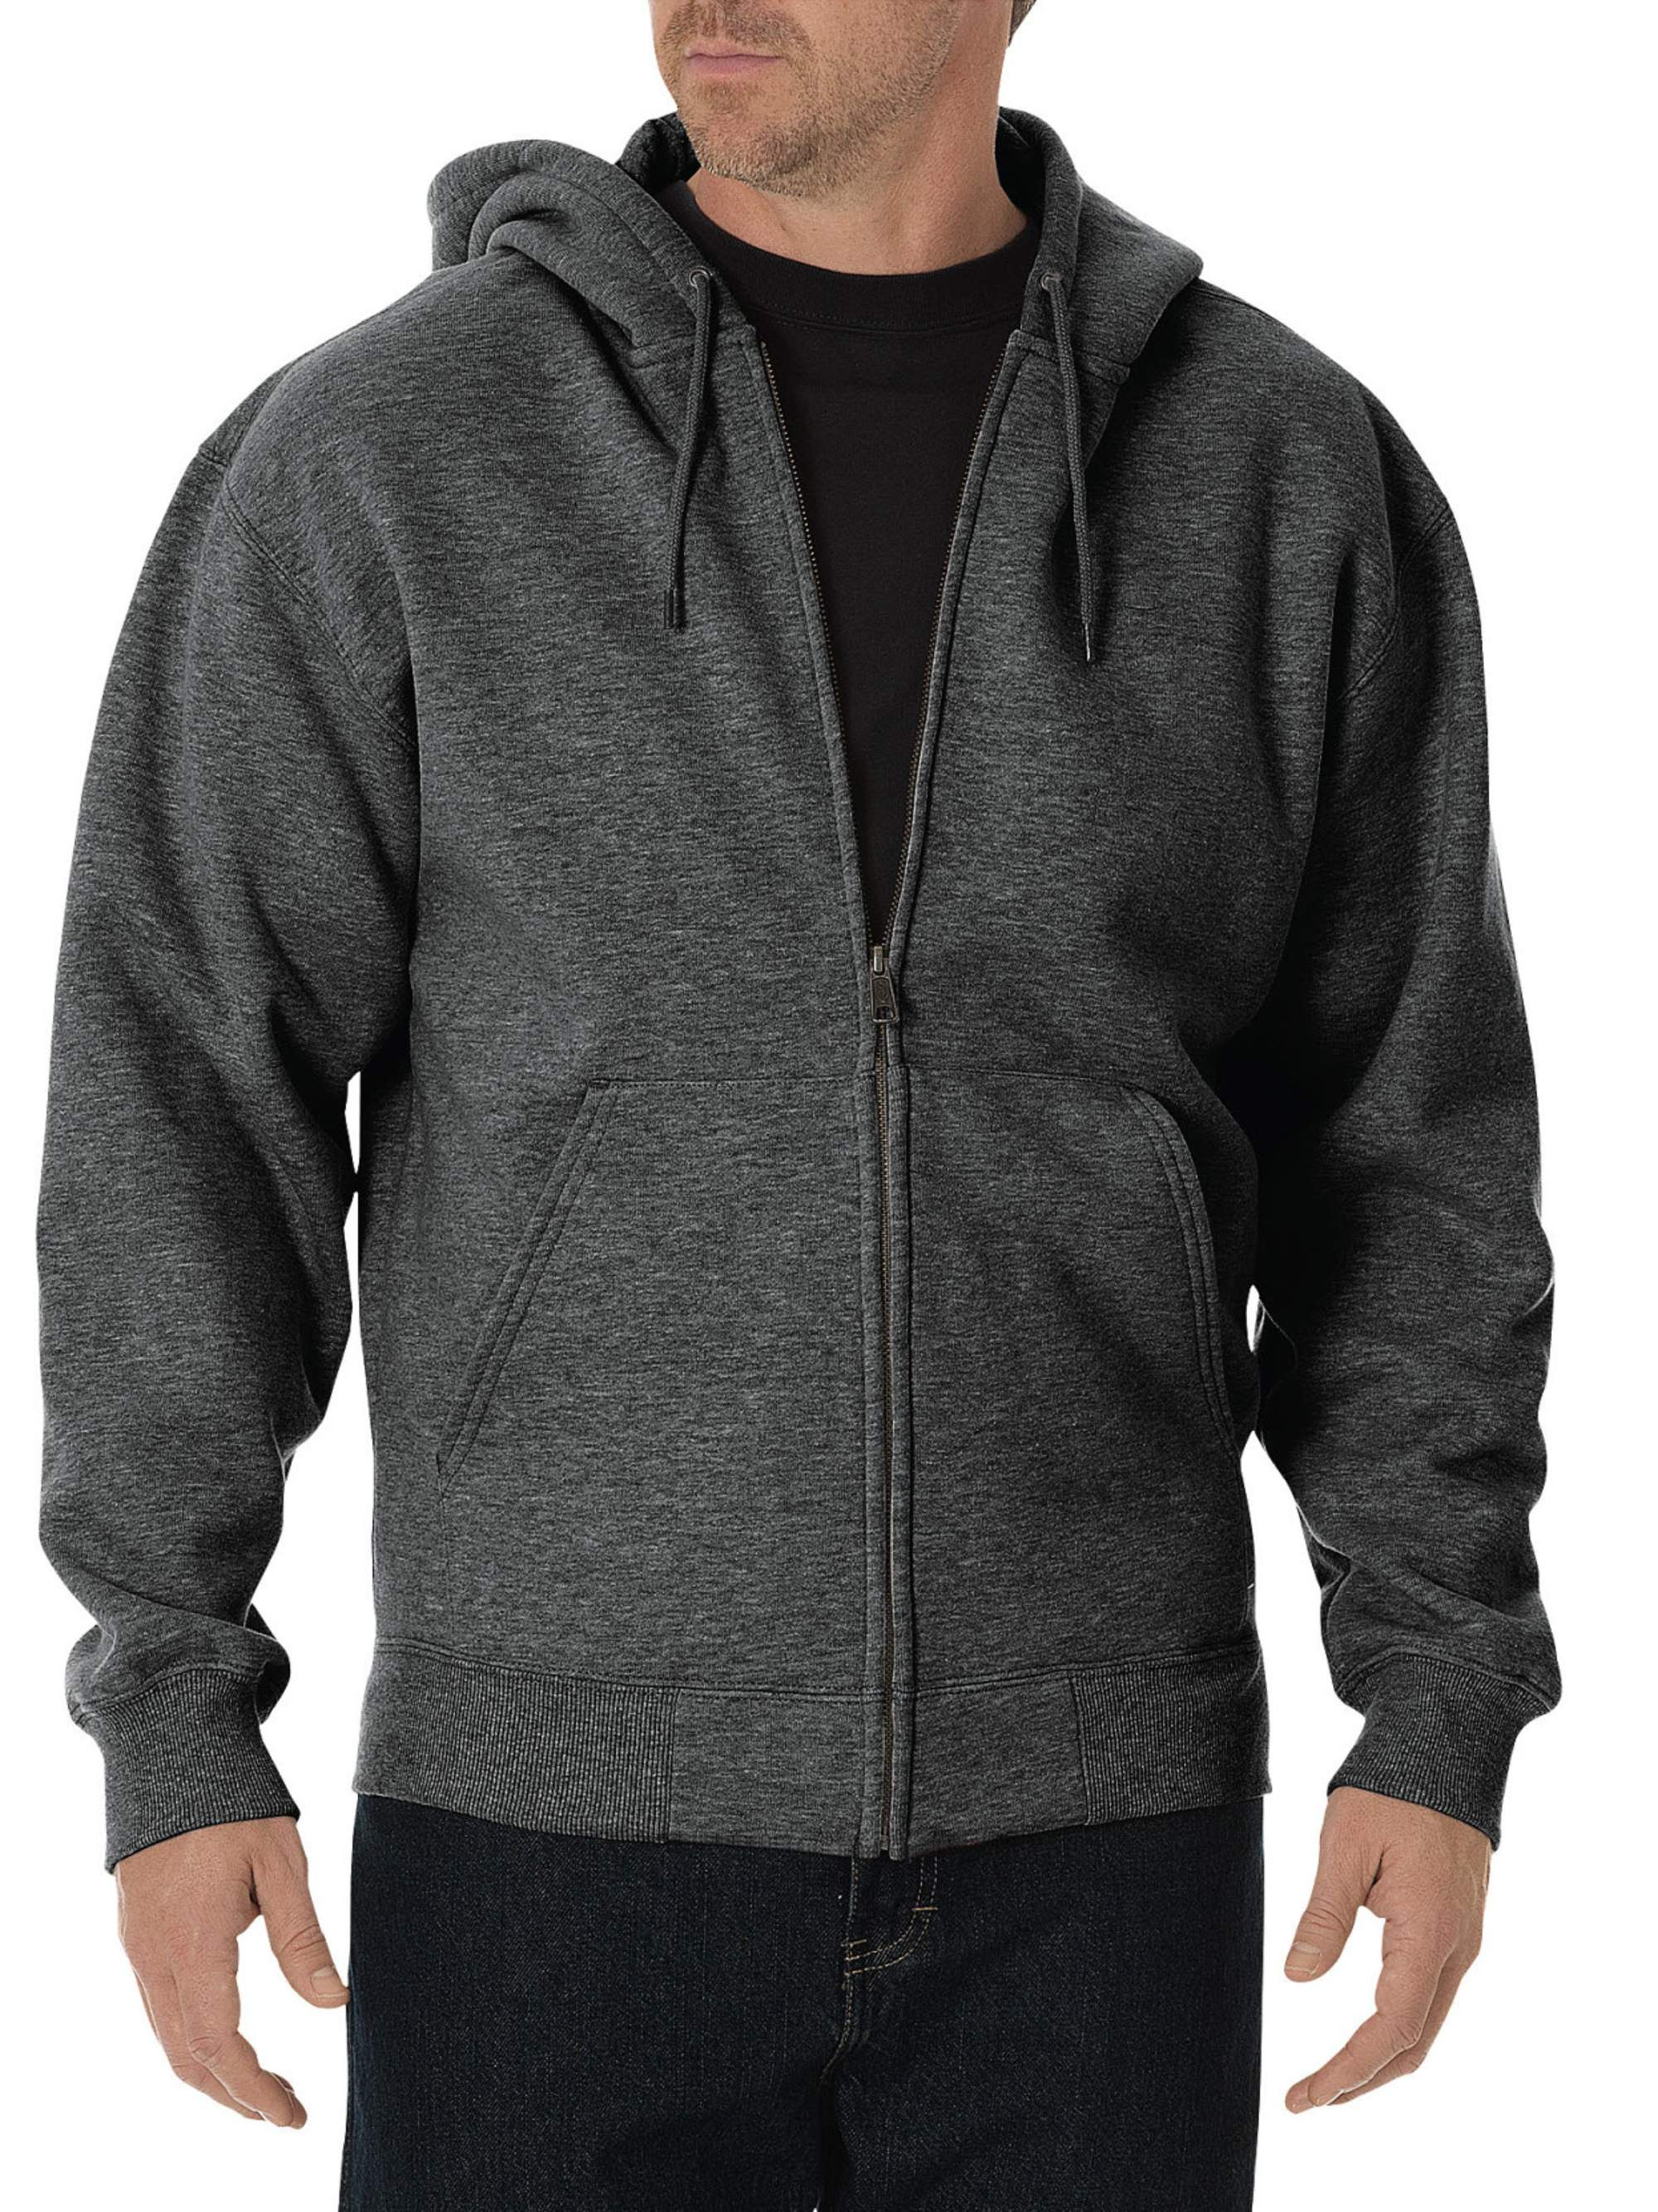 Big and Tall Men's Midweight Fleece Full Zip Hoodie